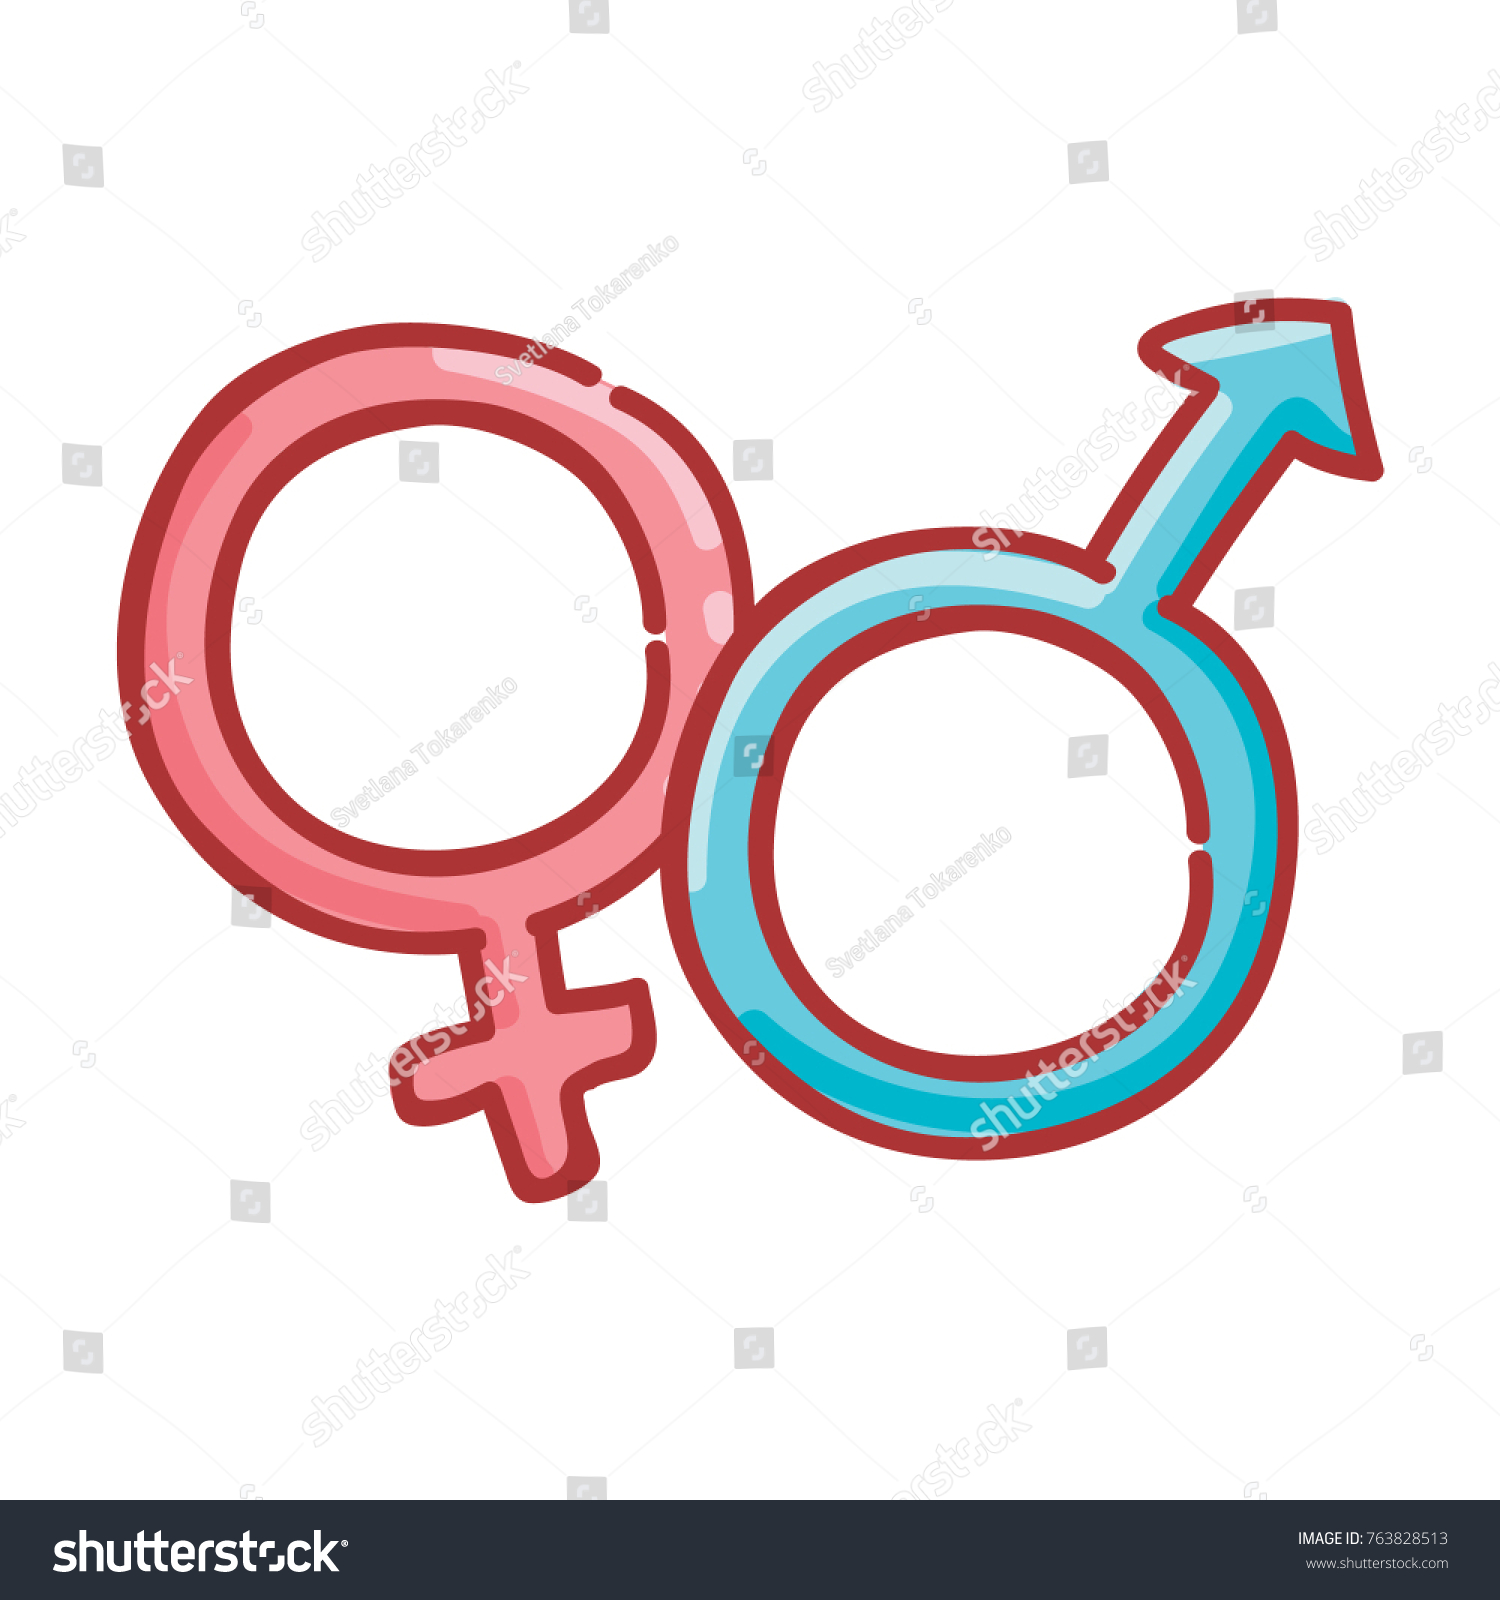 Cute male female gender signs symbols stock vector 763828513 cute male and female gender signs or symbols hand drawn illustration in vector cartoon buycottarizona Images